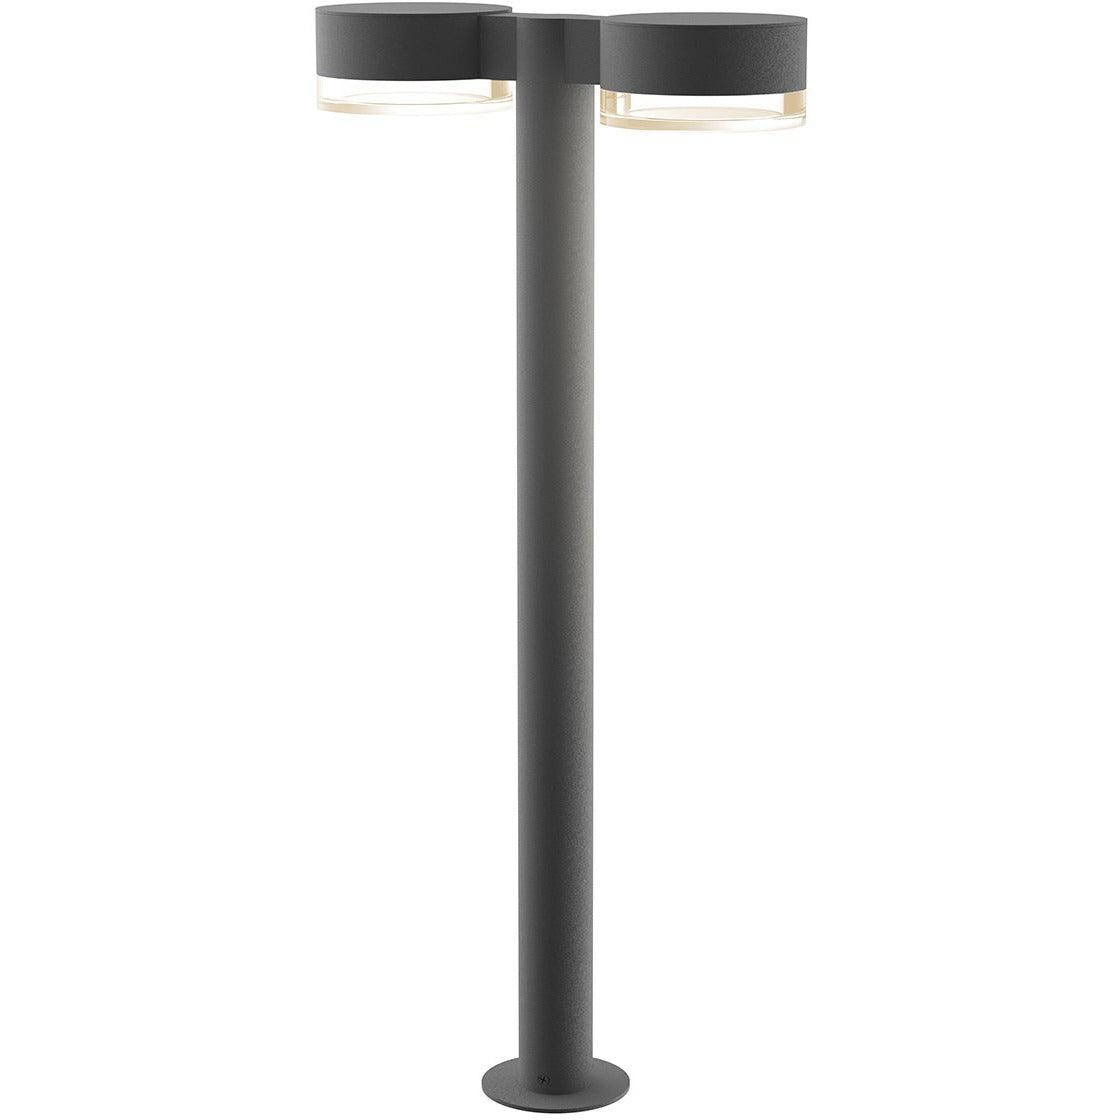 Sonneman - A Way of Light - 7308.PC.FH.74-WL - LED Bollard - REALS - Textured Gray